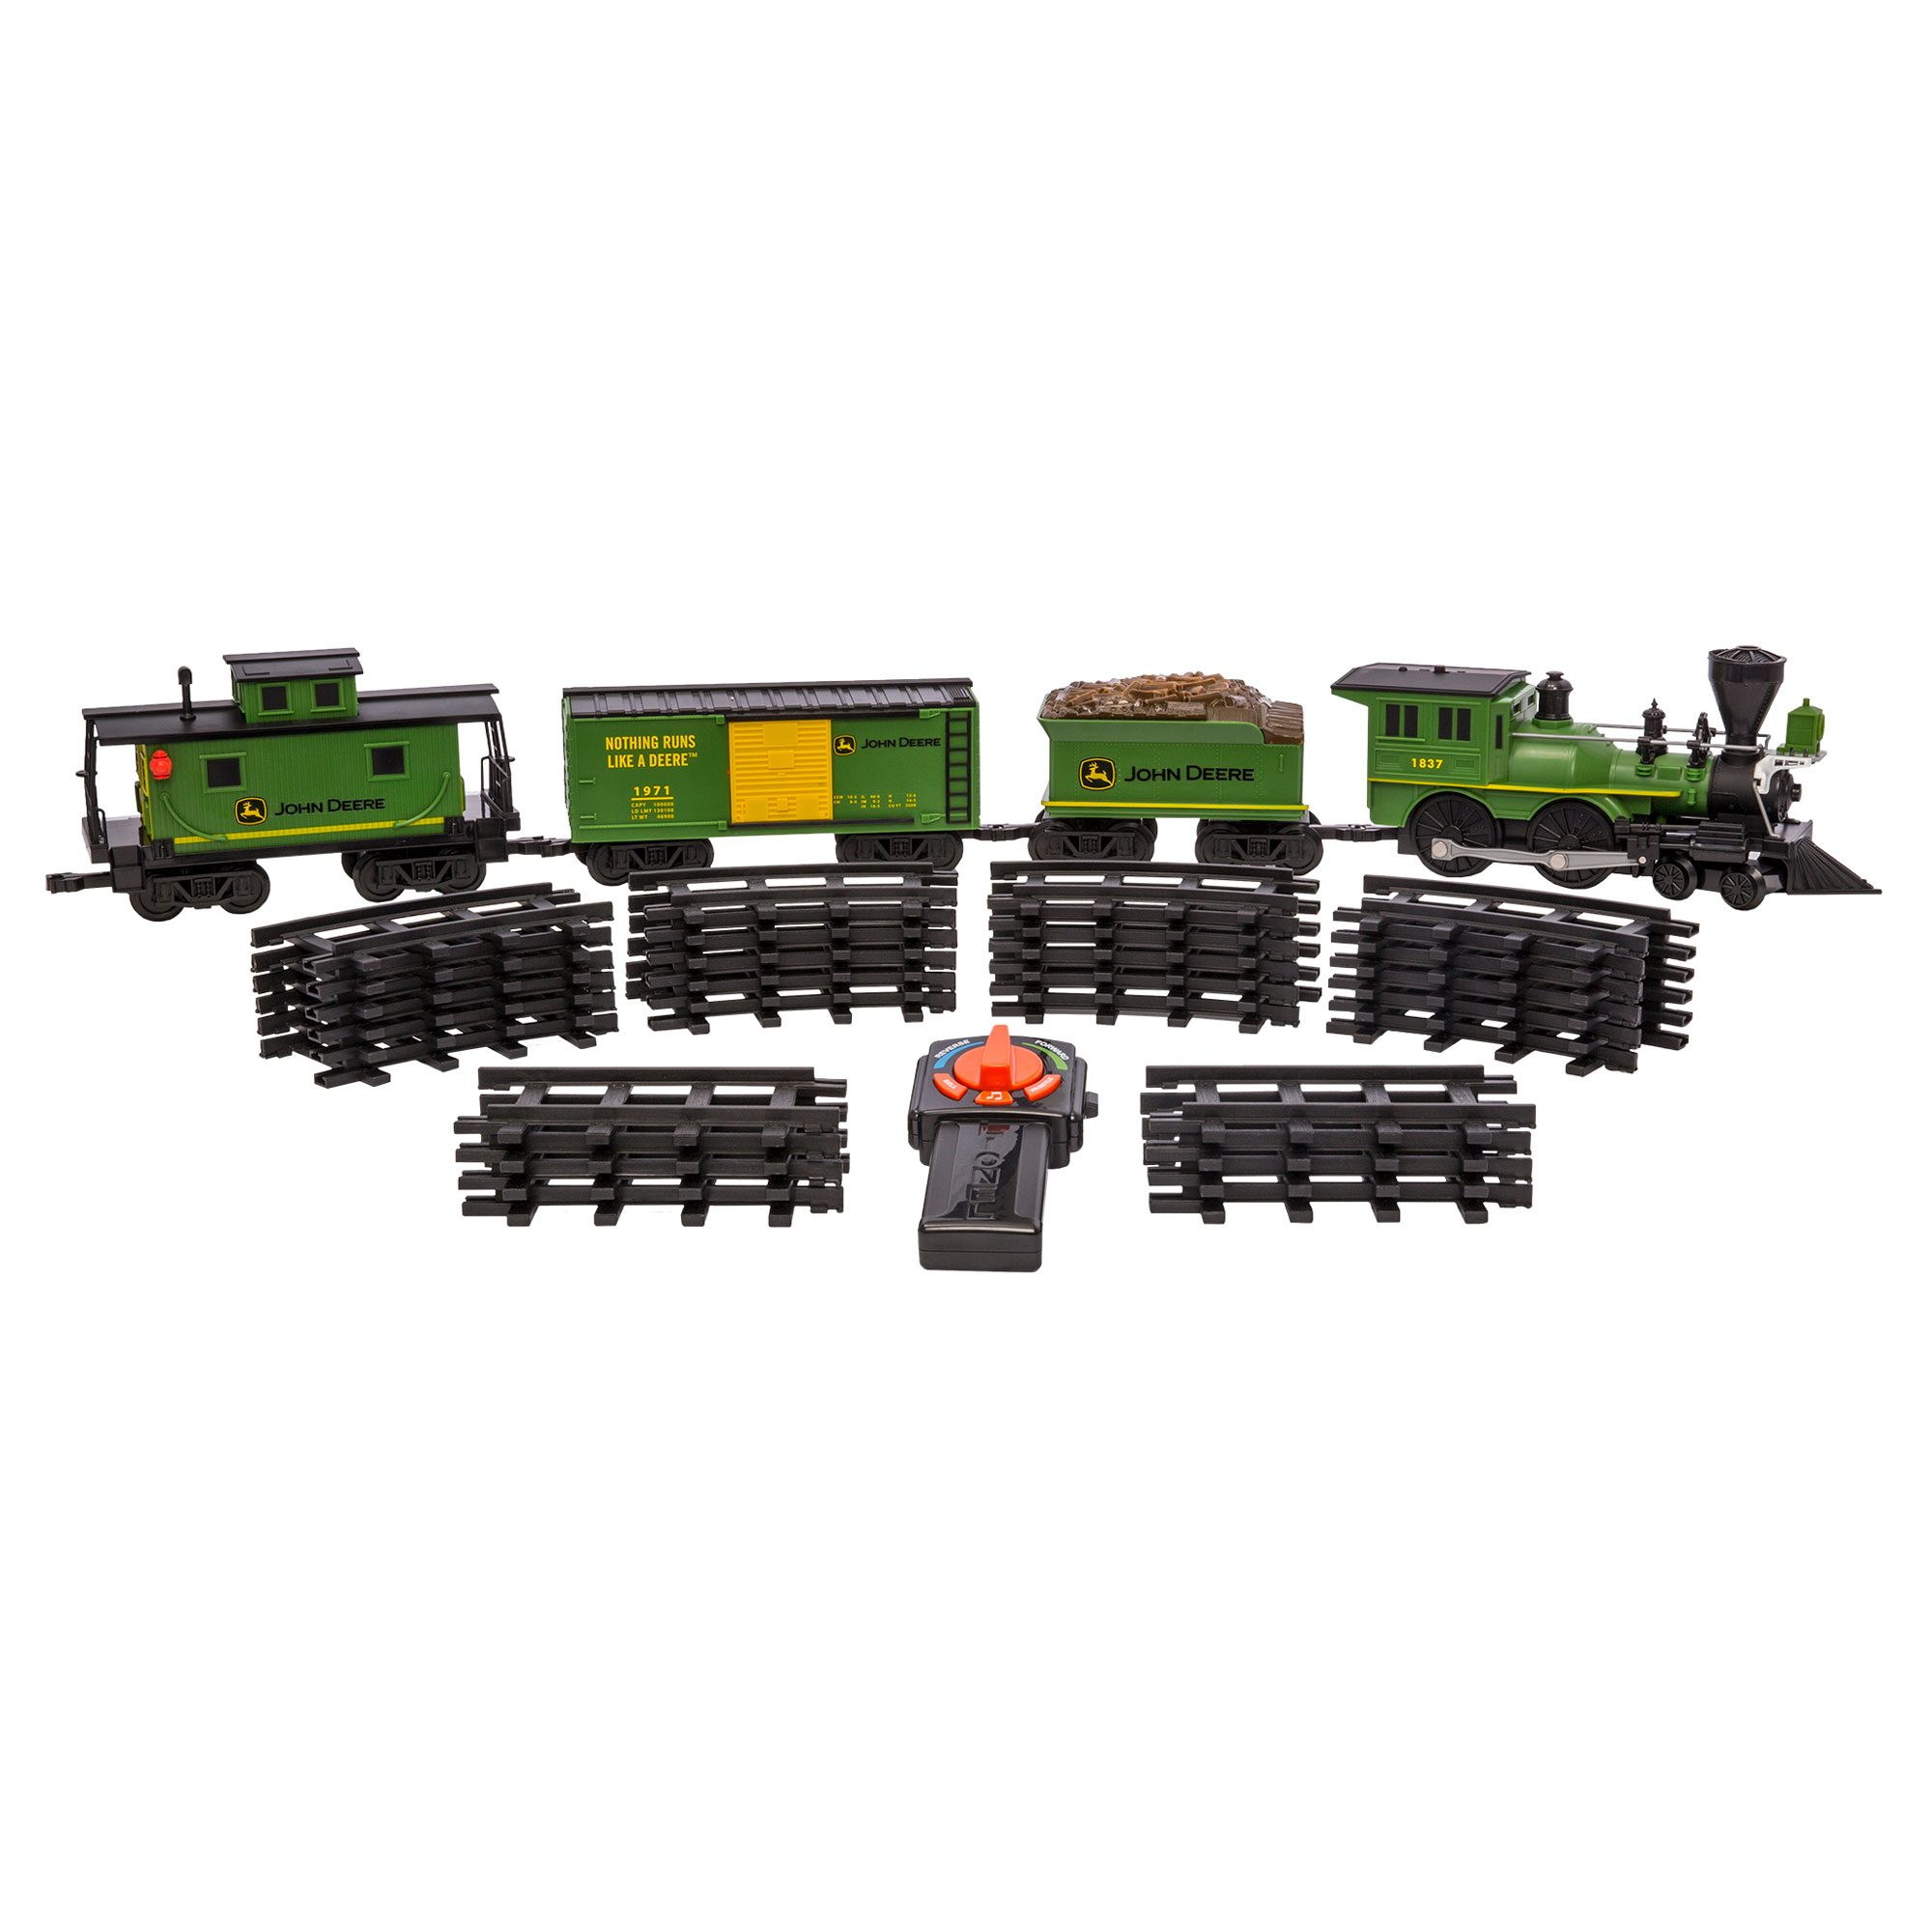 lionel trains john deere tractor ready to play kids toy electric model train set